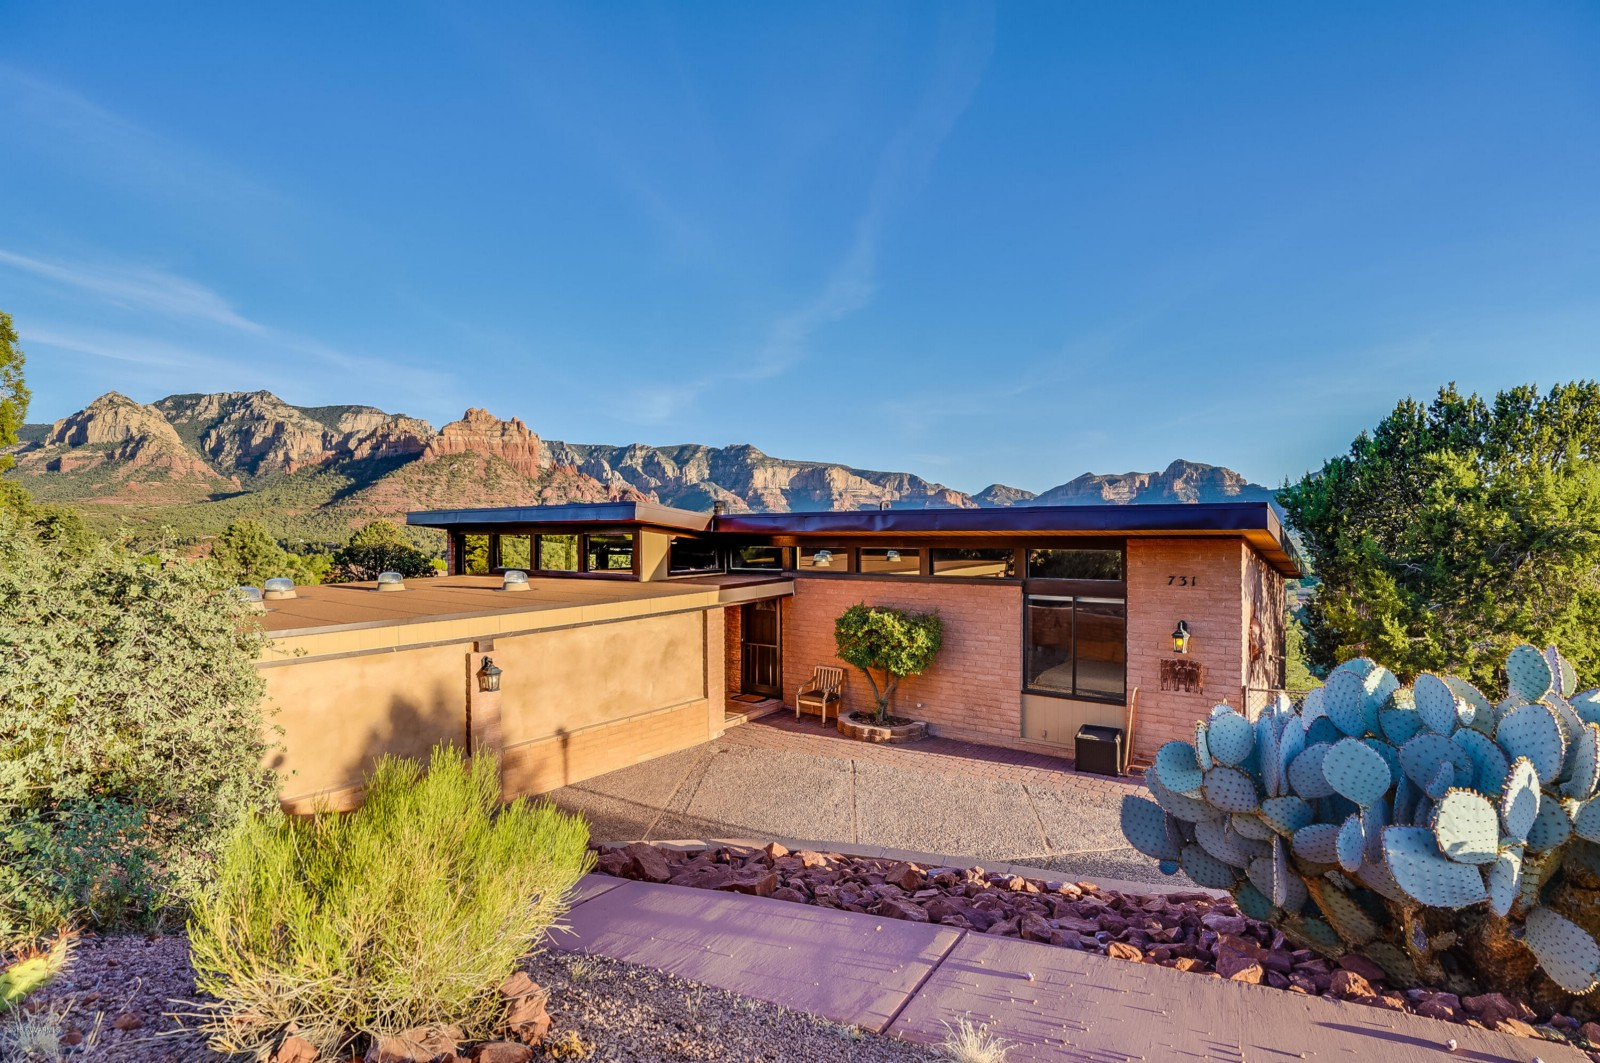 Income Opportunity In Uptown Sedona